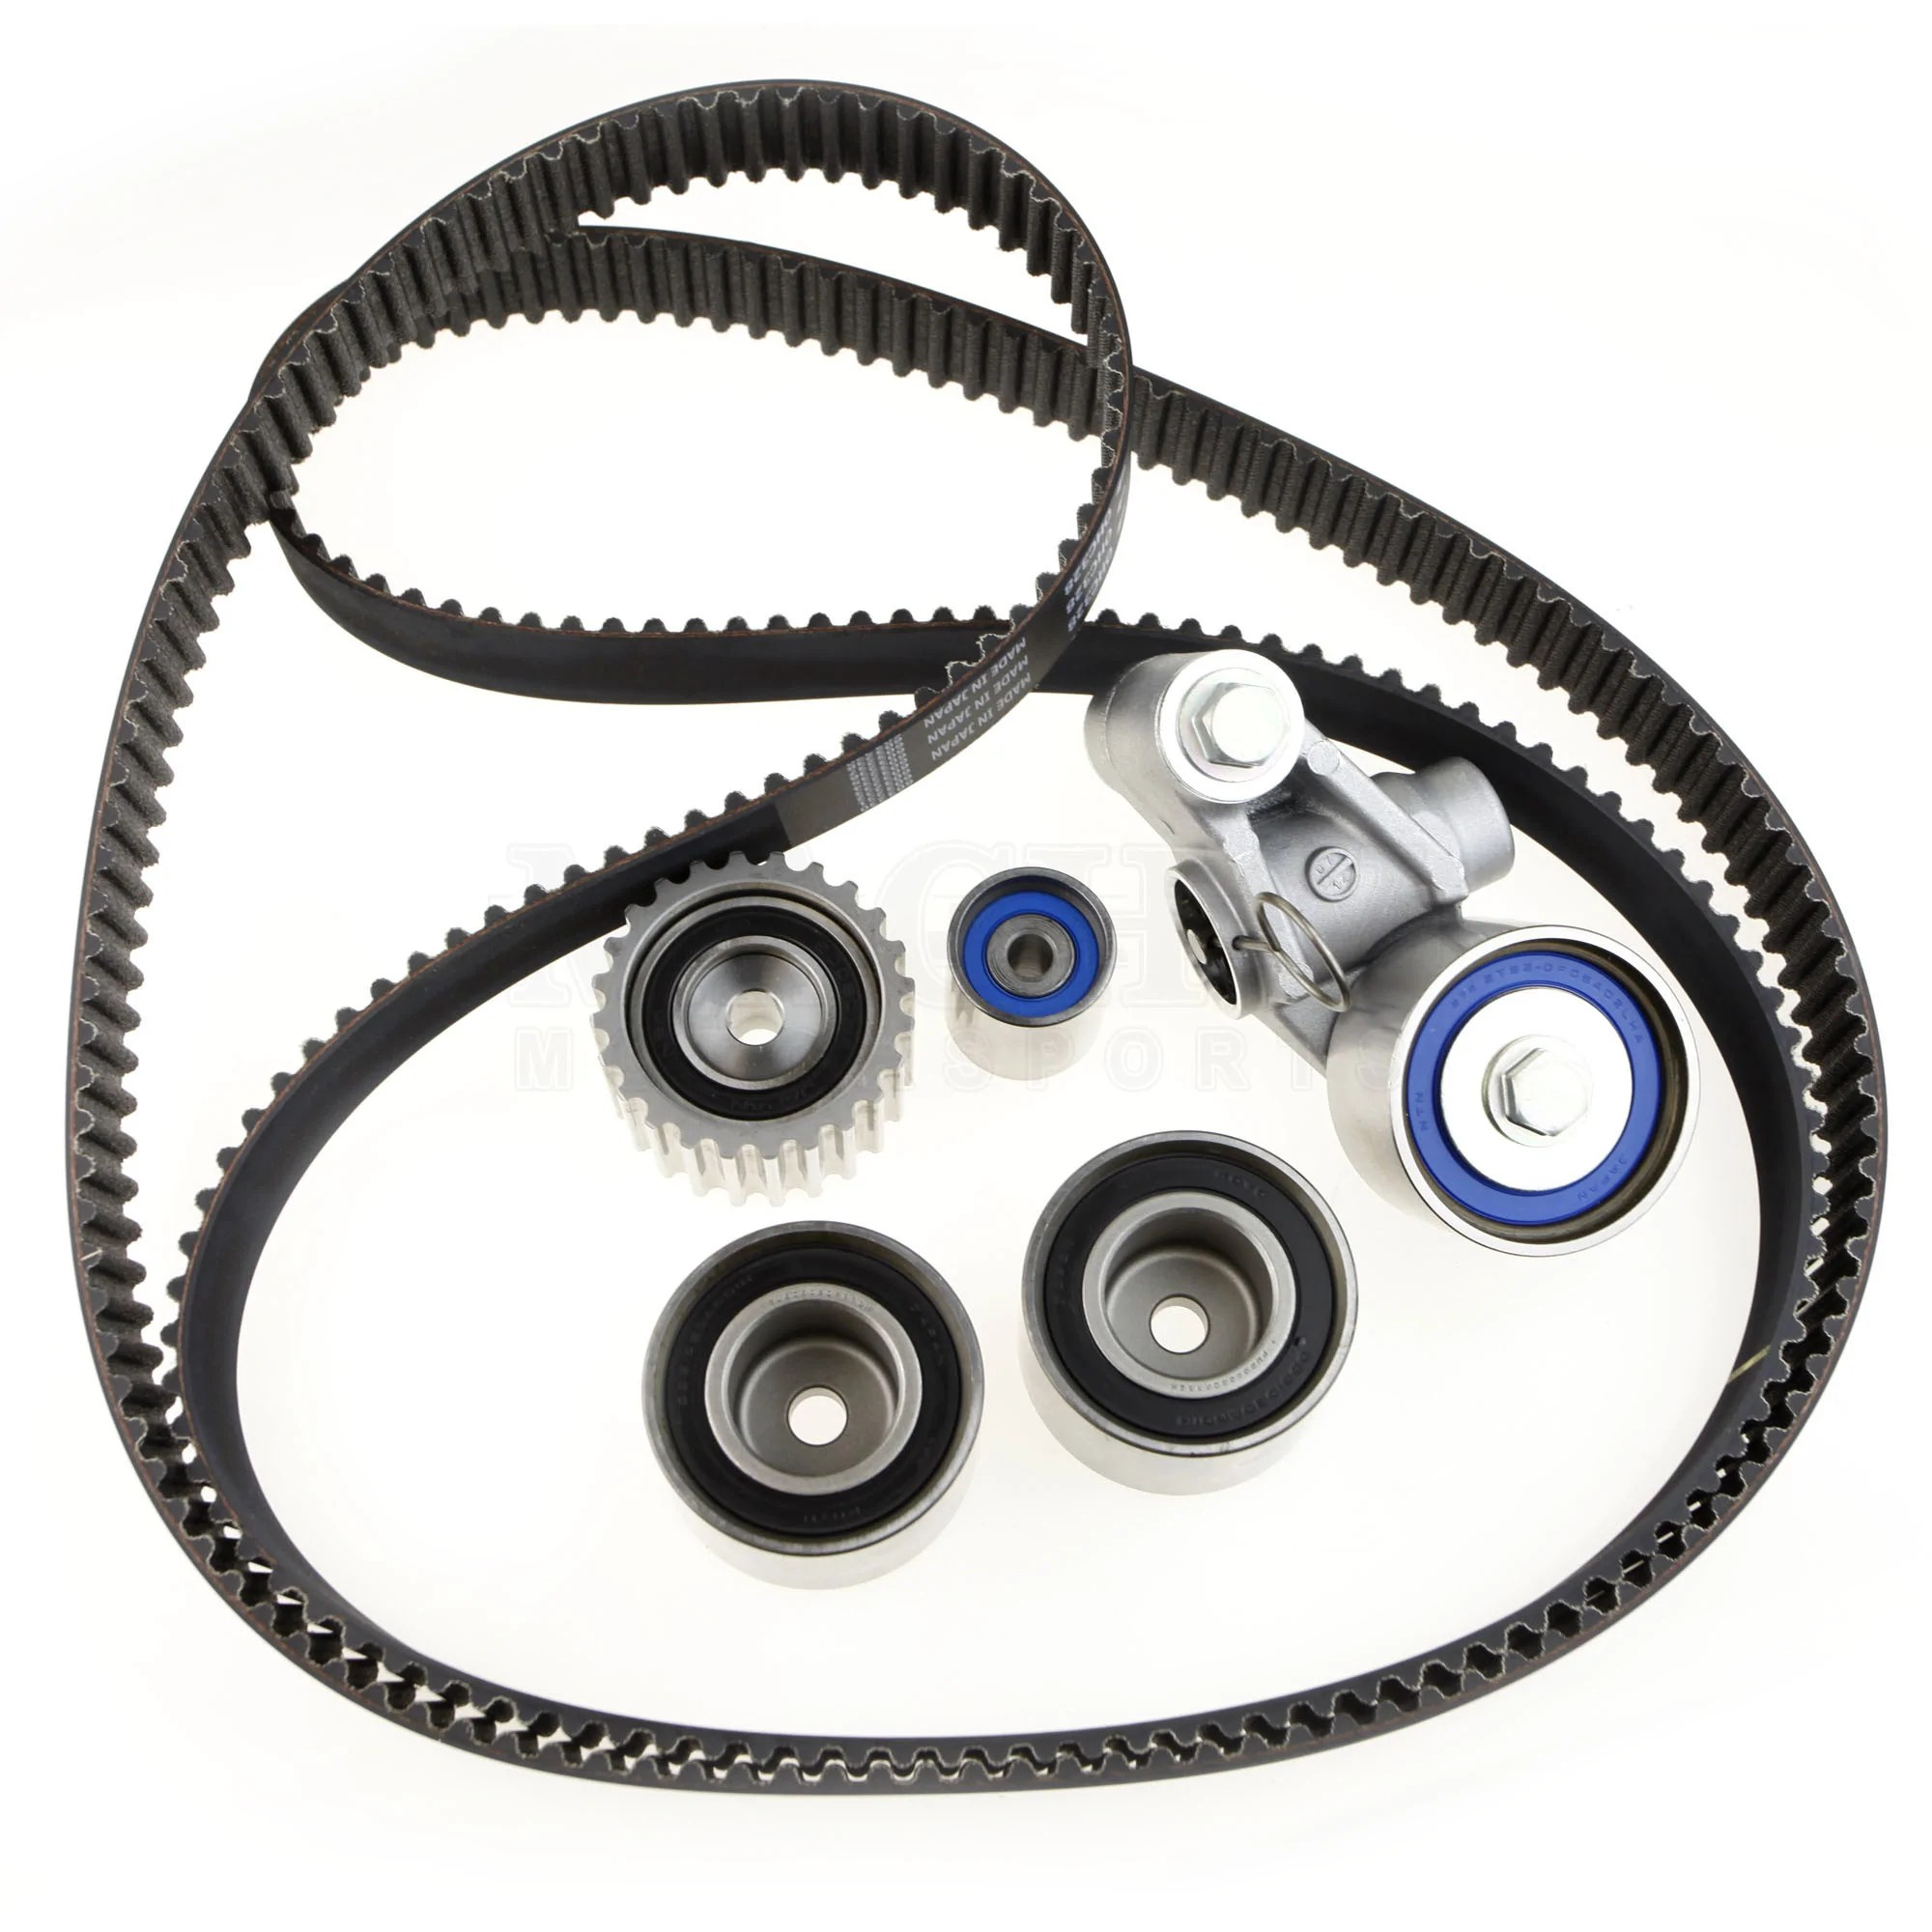 hight resolution of oem quality timing belt kit without water pump 2002 2014 wrx 2004 2018 sti 2003 2013 forester 2005 2009 legacy gt outback xt